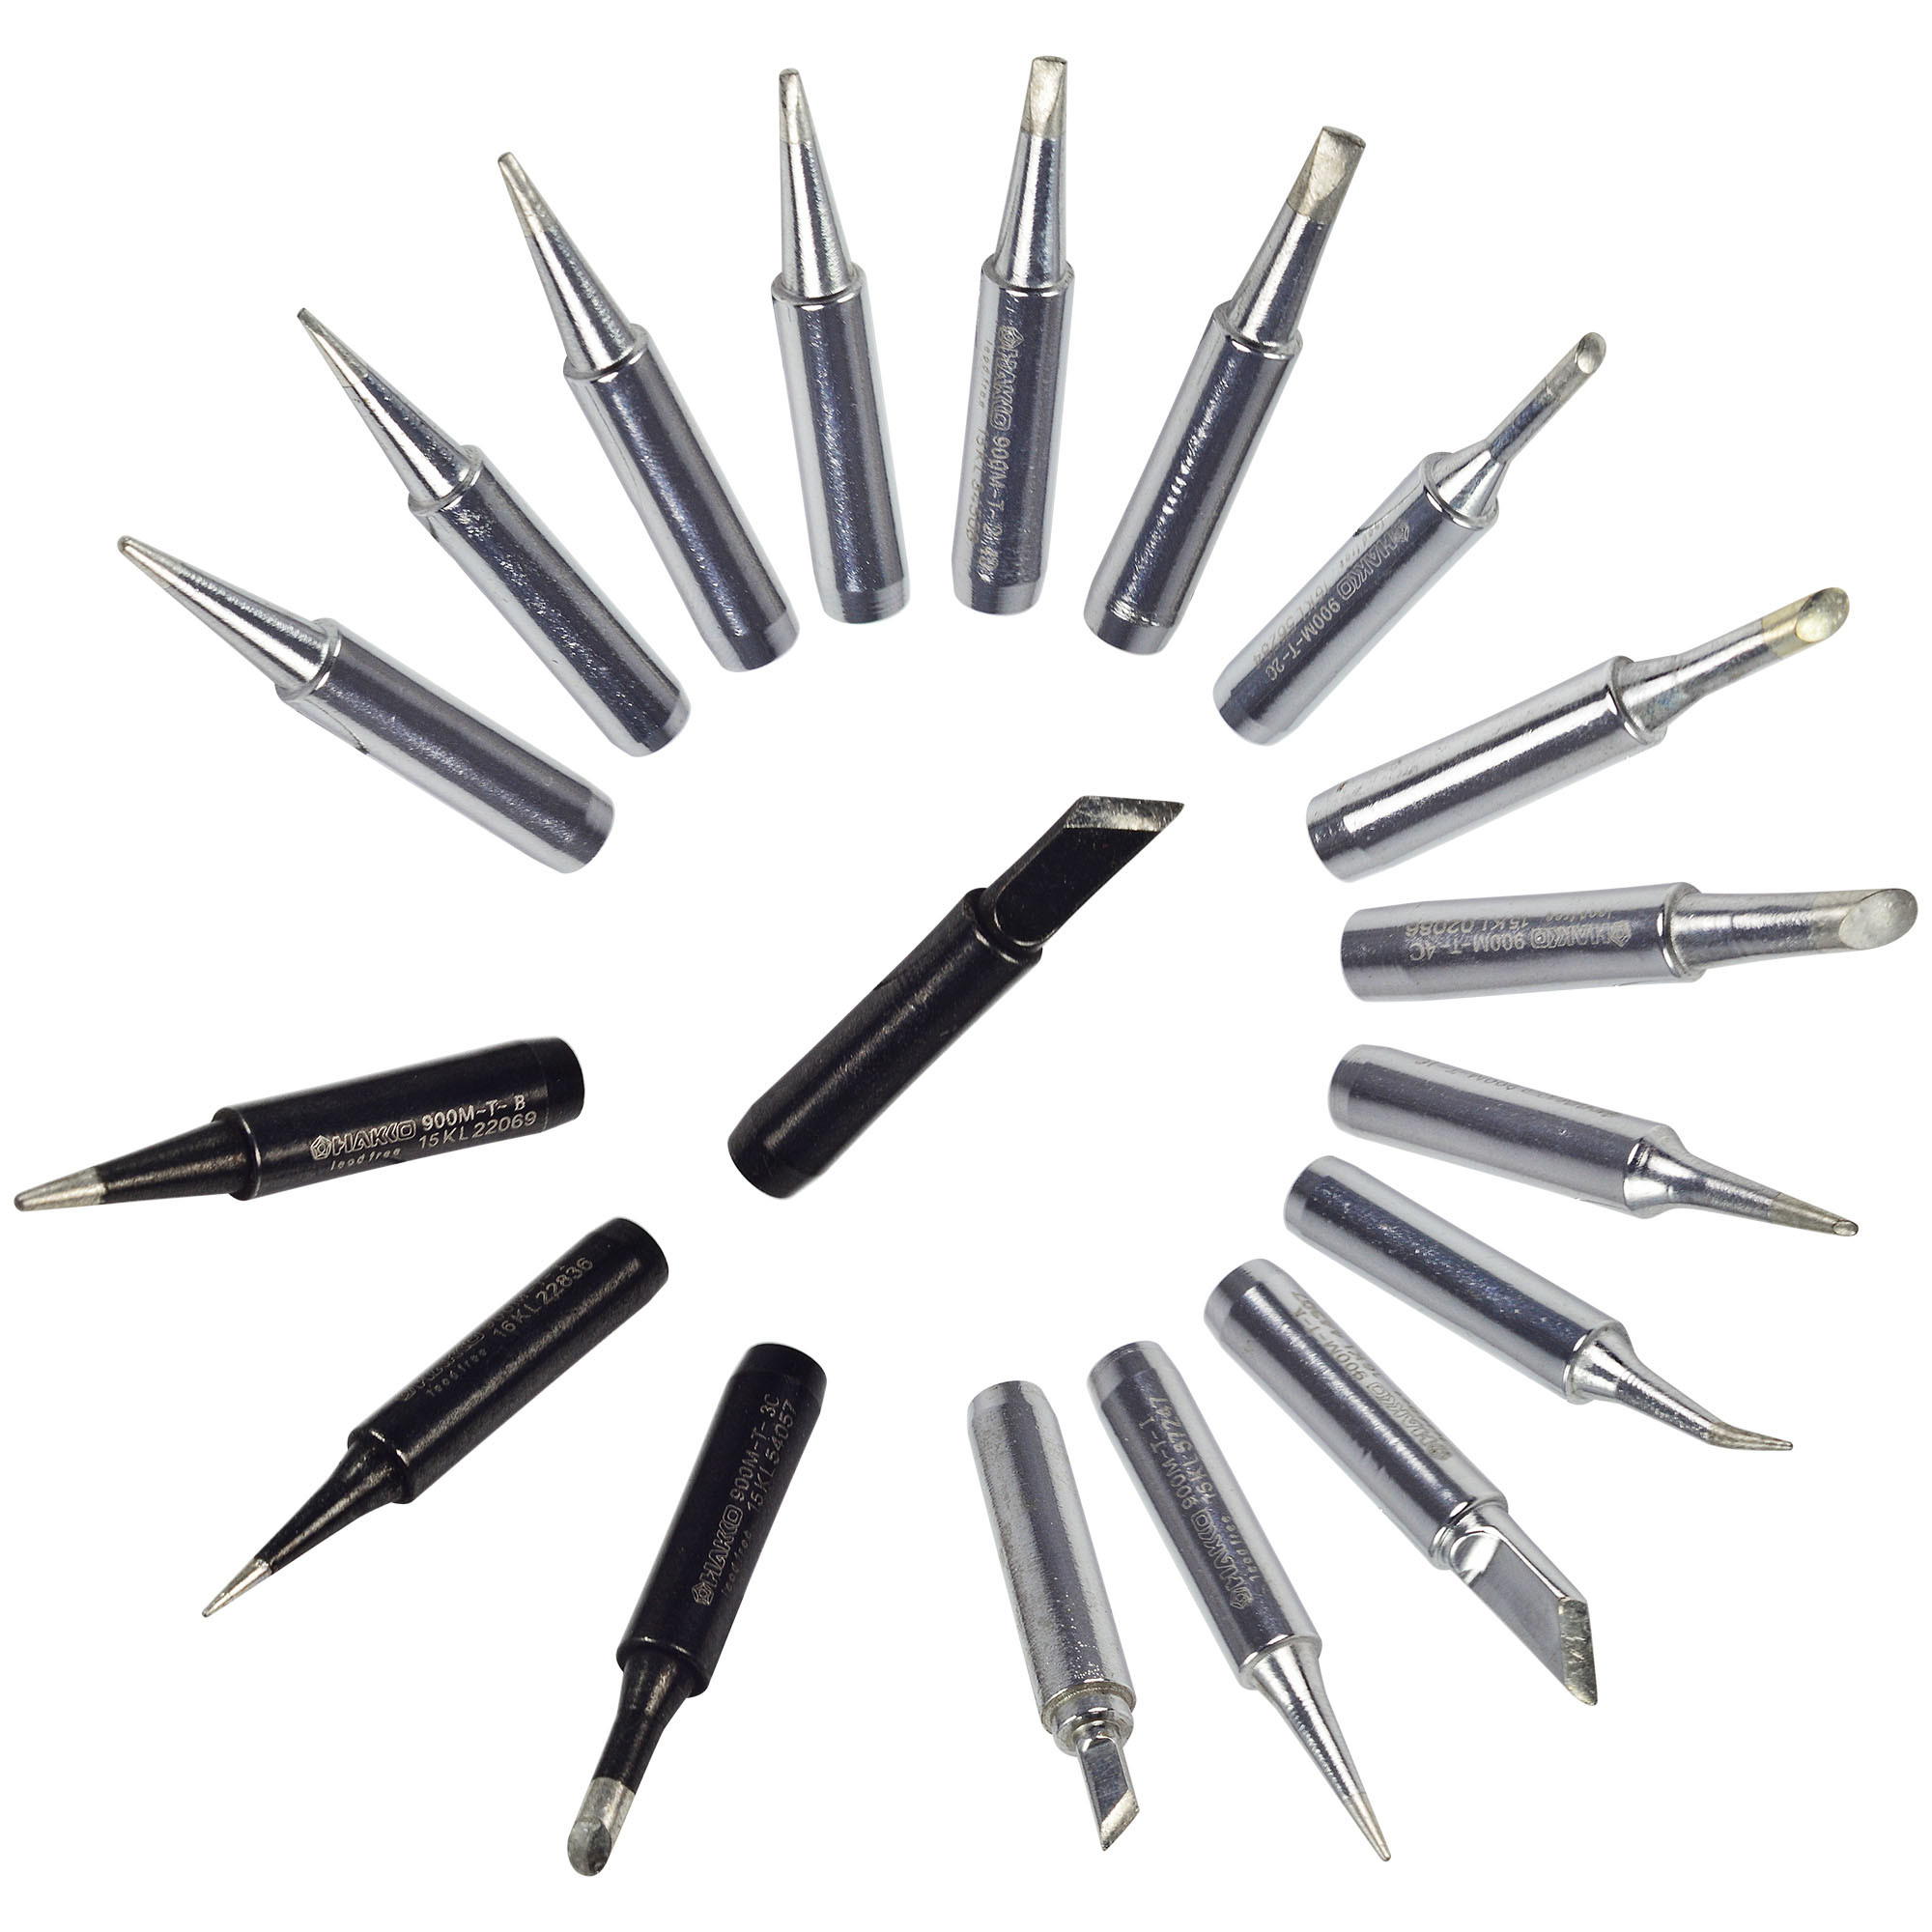 18pcs Solder Iron Tip Lead Free Soldering Bit Replace Tips